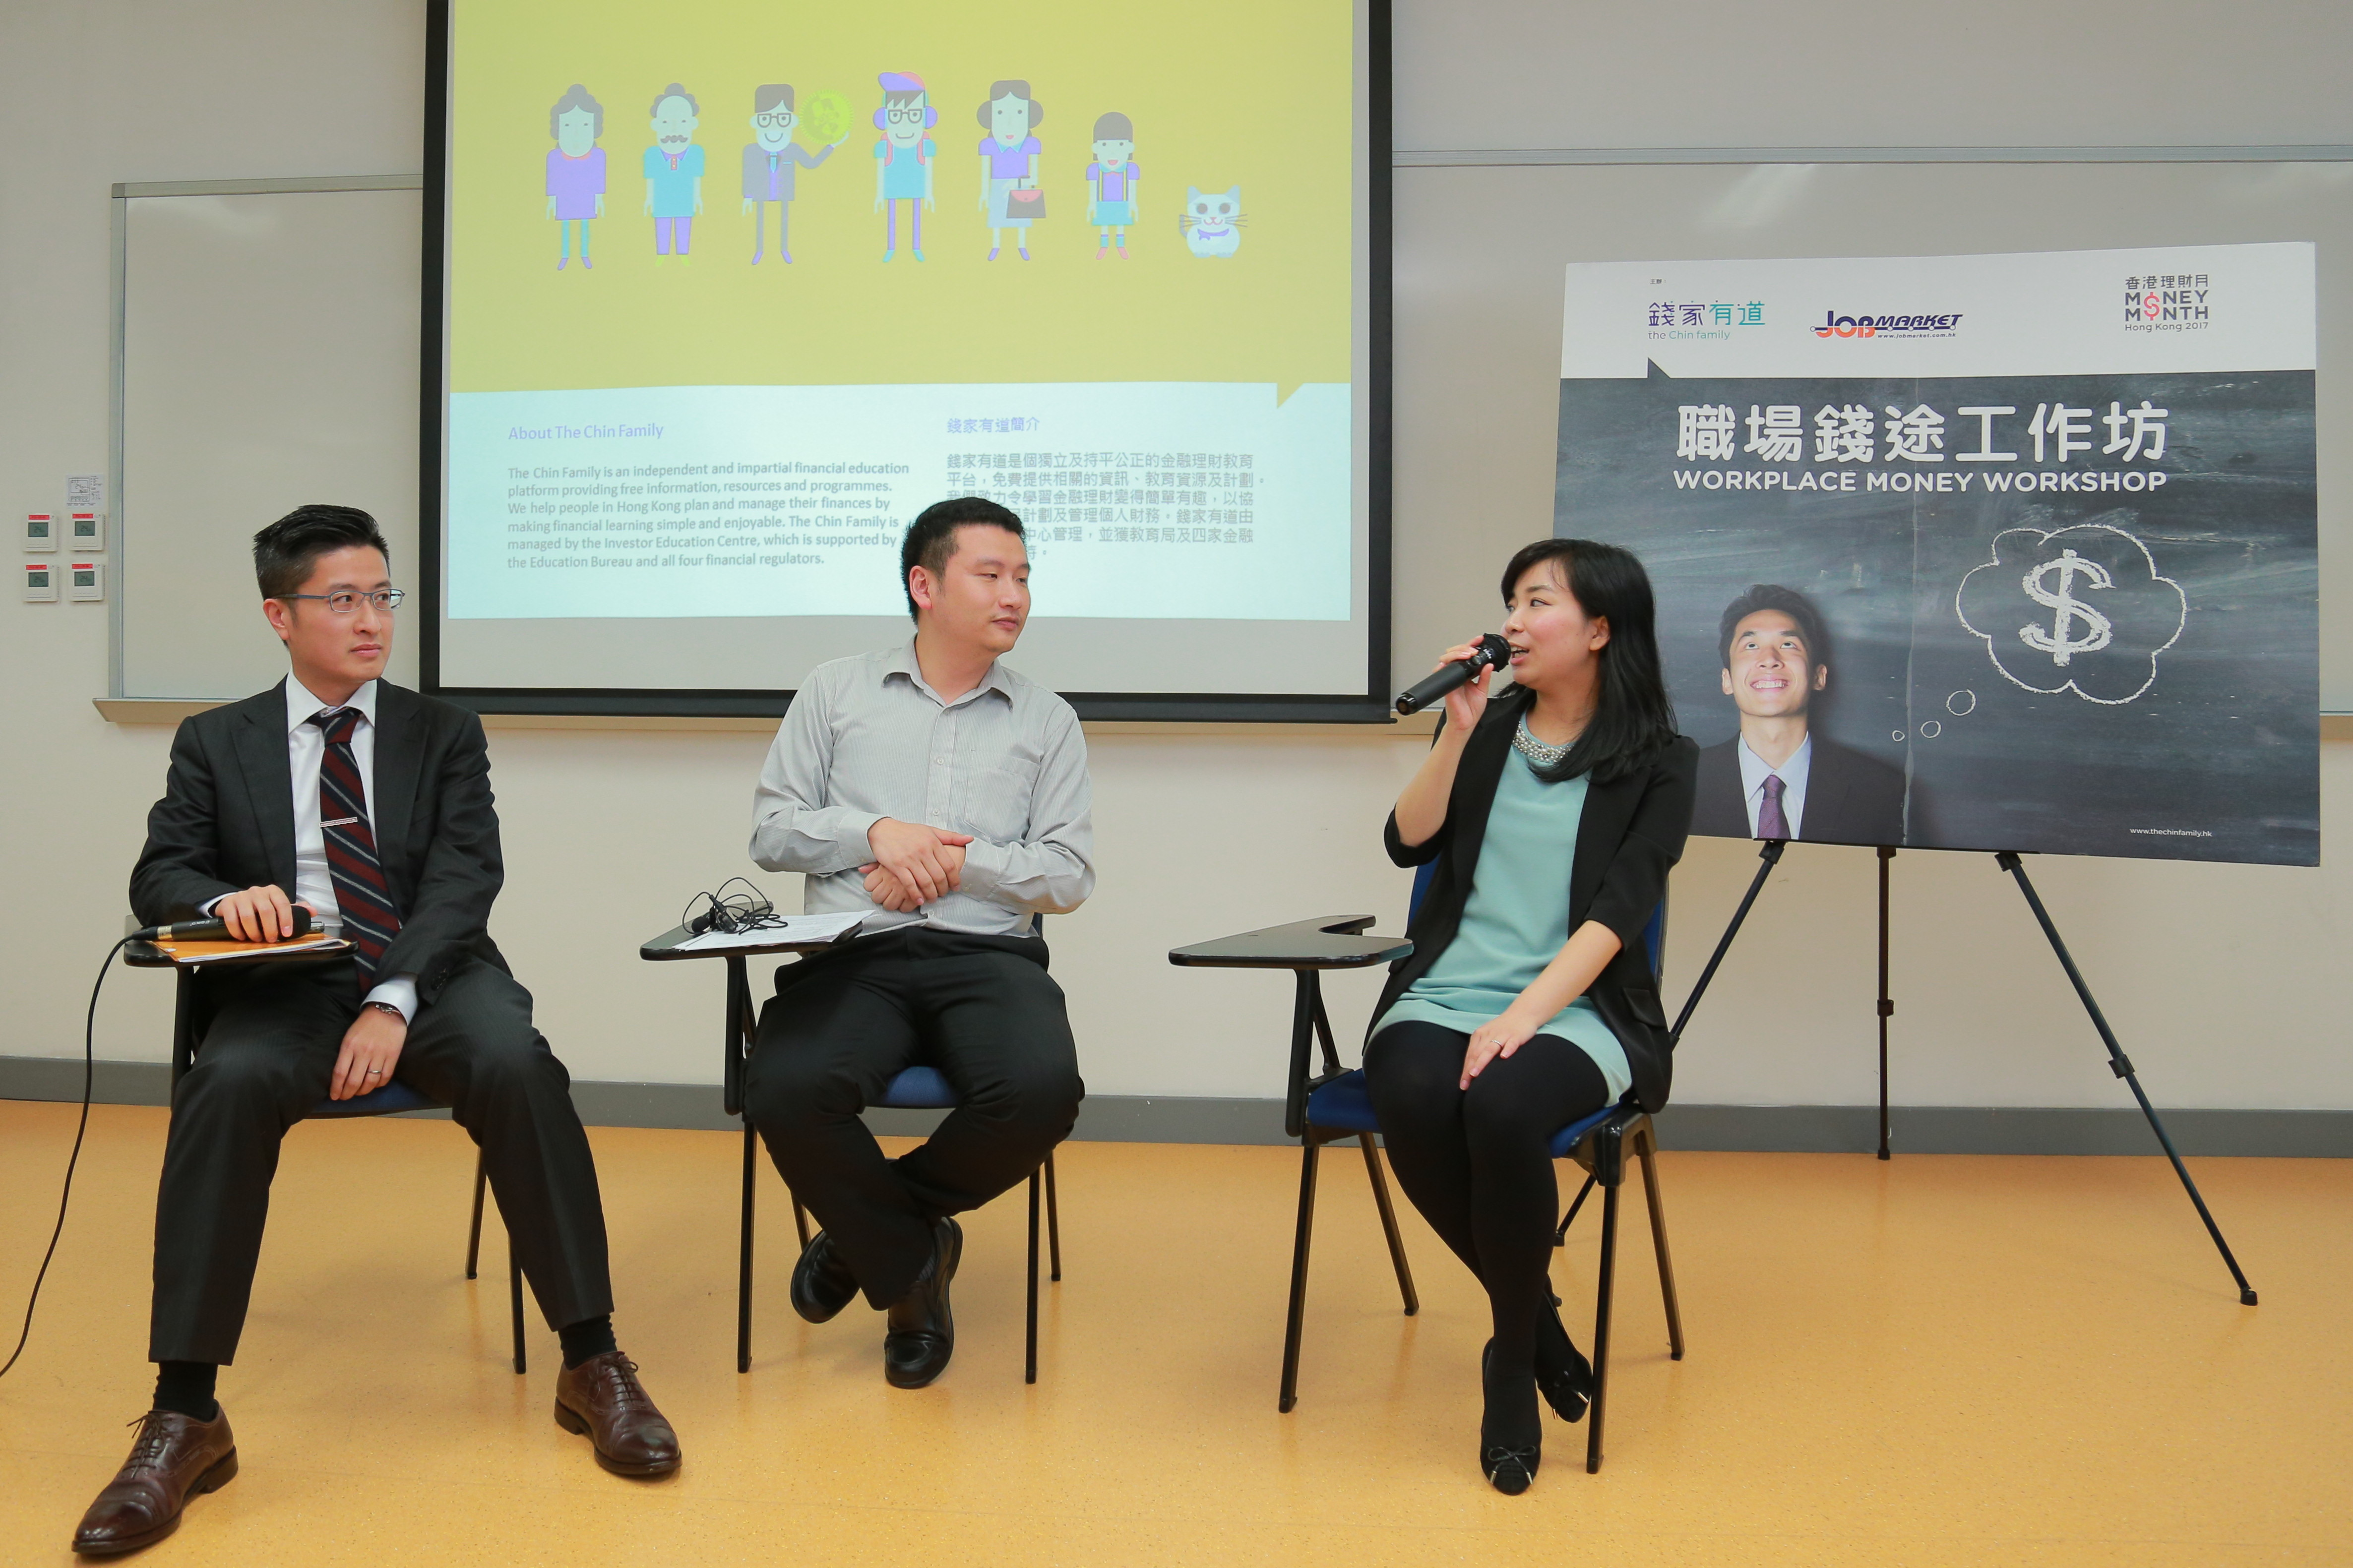 Business Career Talk and Workplace Money Workshop - Photo - 1